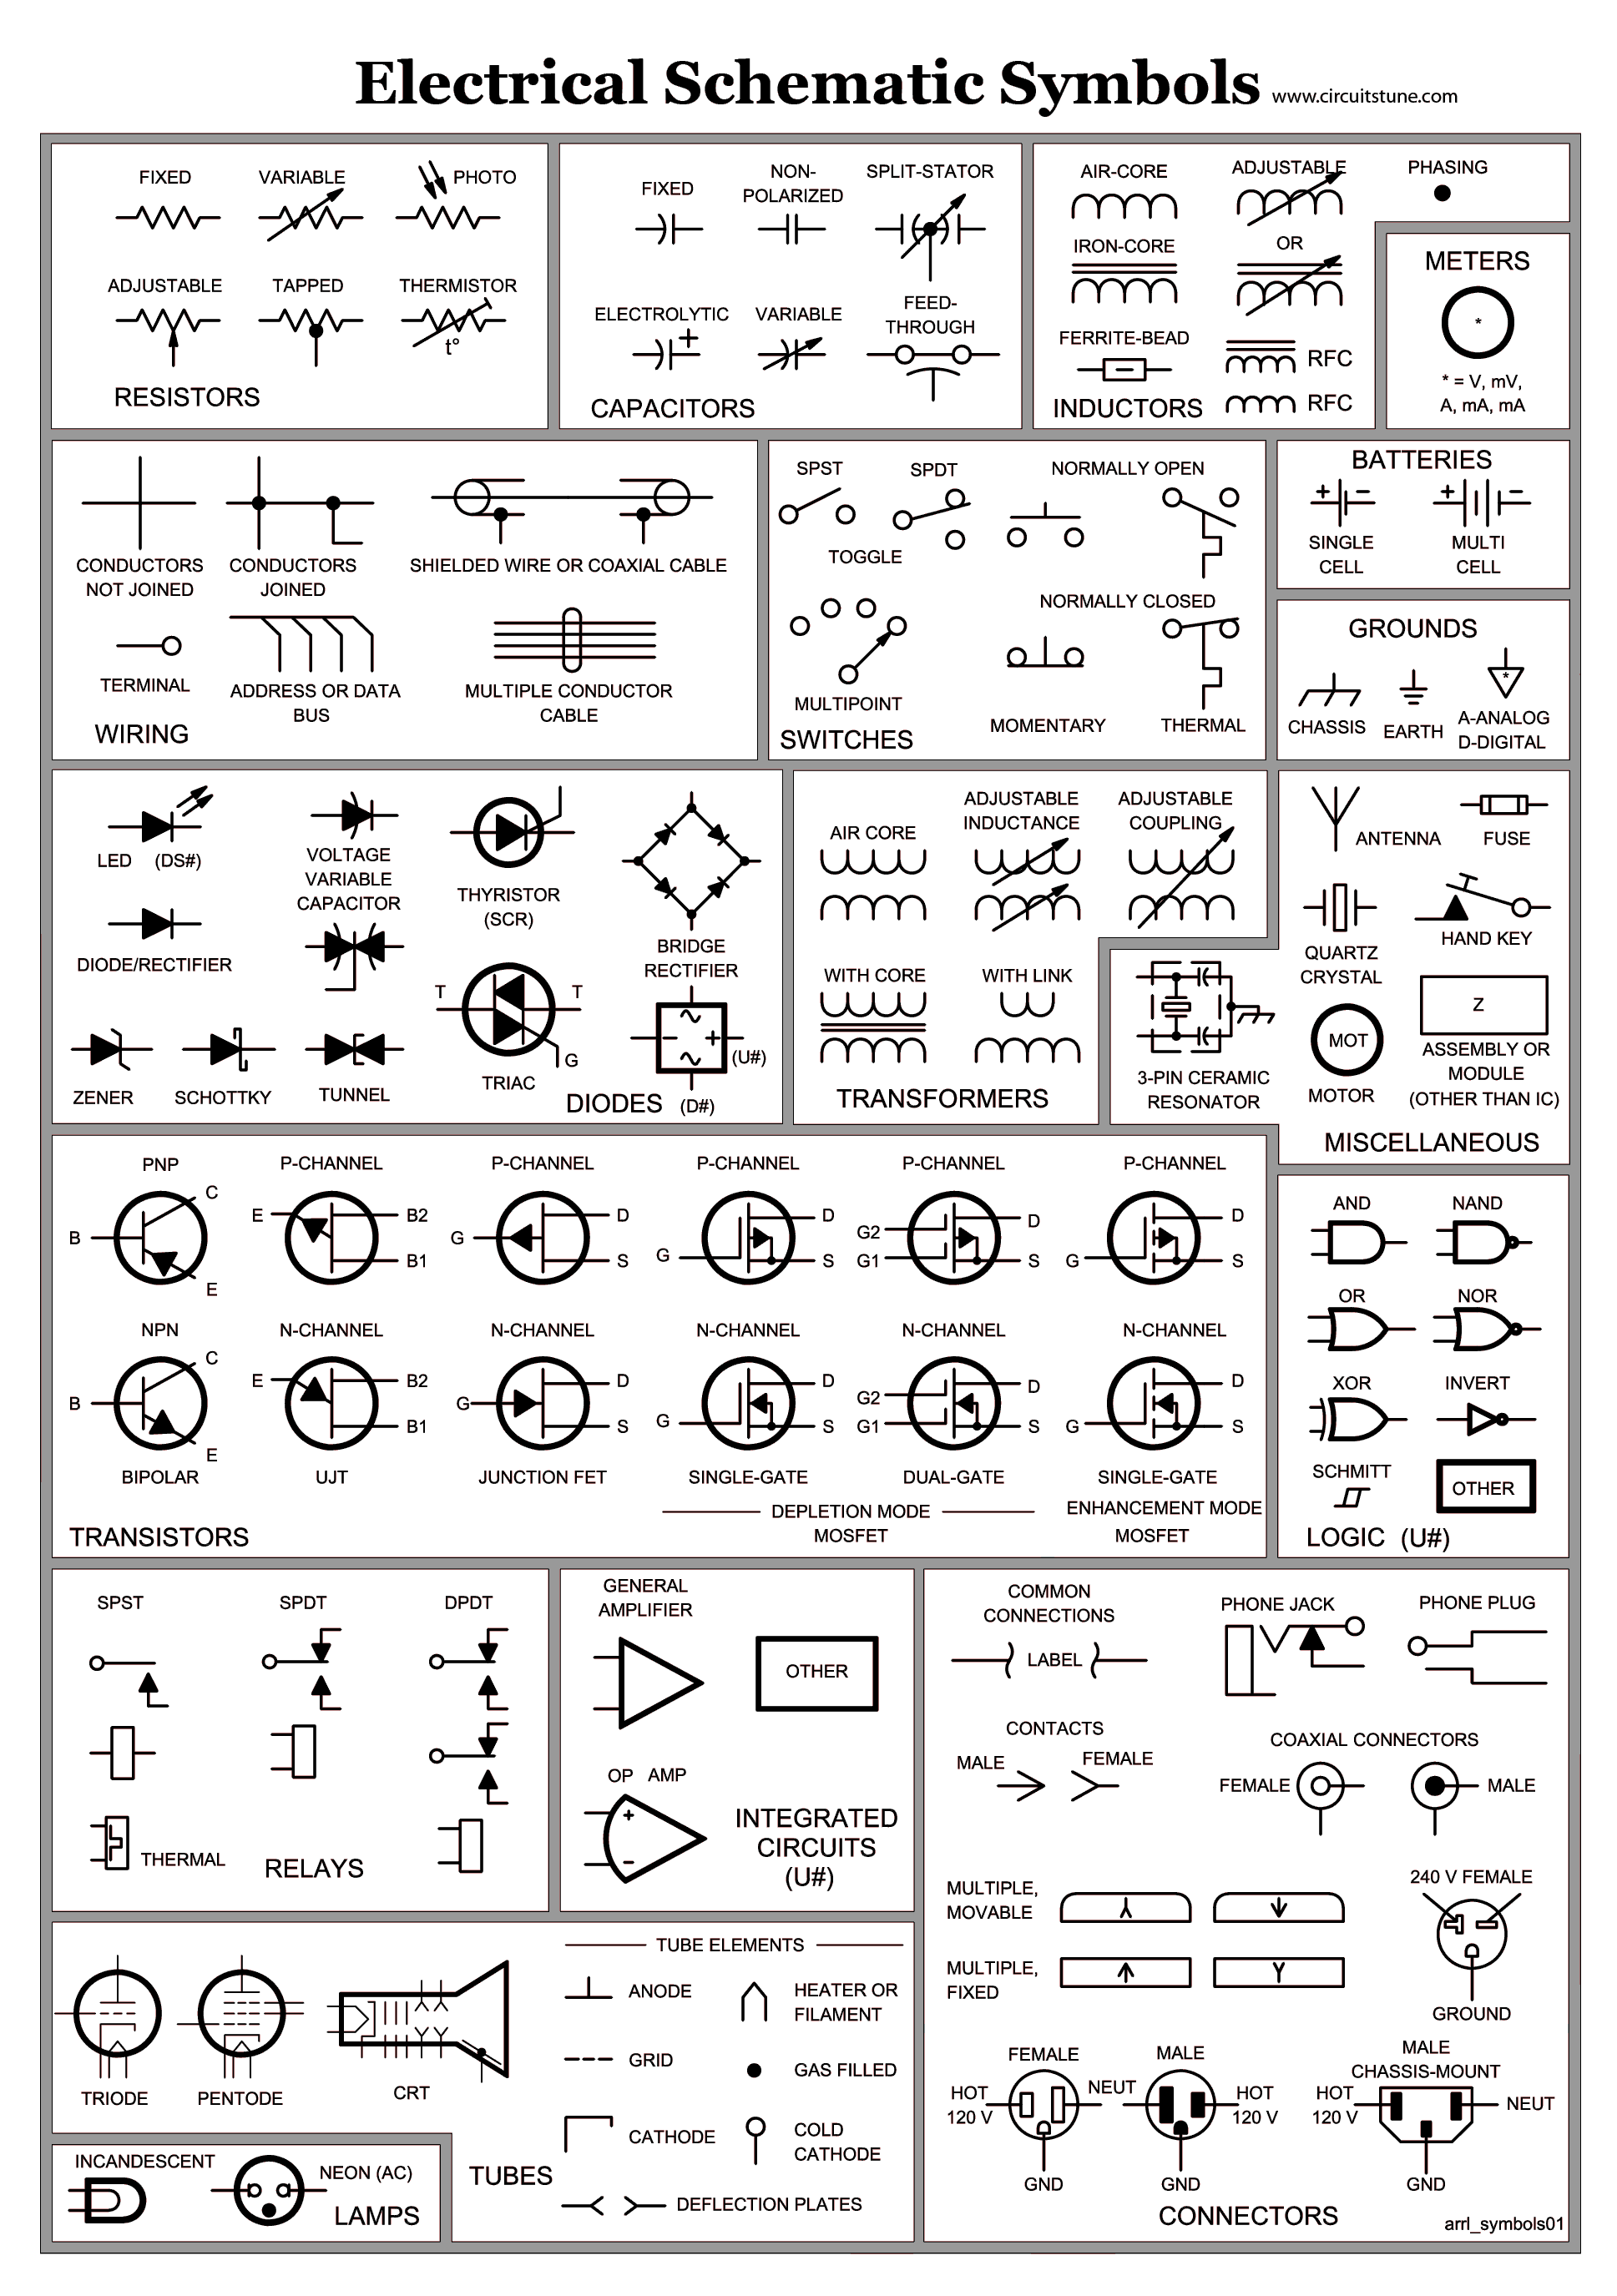 industrial electrical wiring diagram symbols   industrial motor    electrical schematic symbols circuitstune